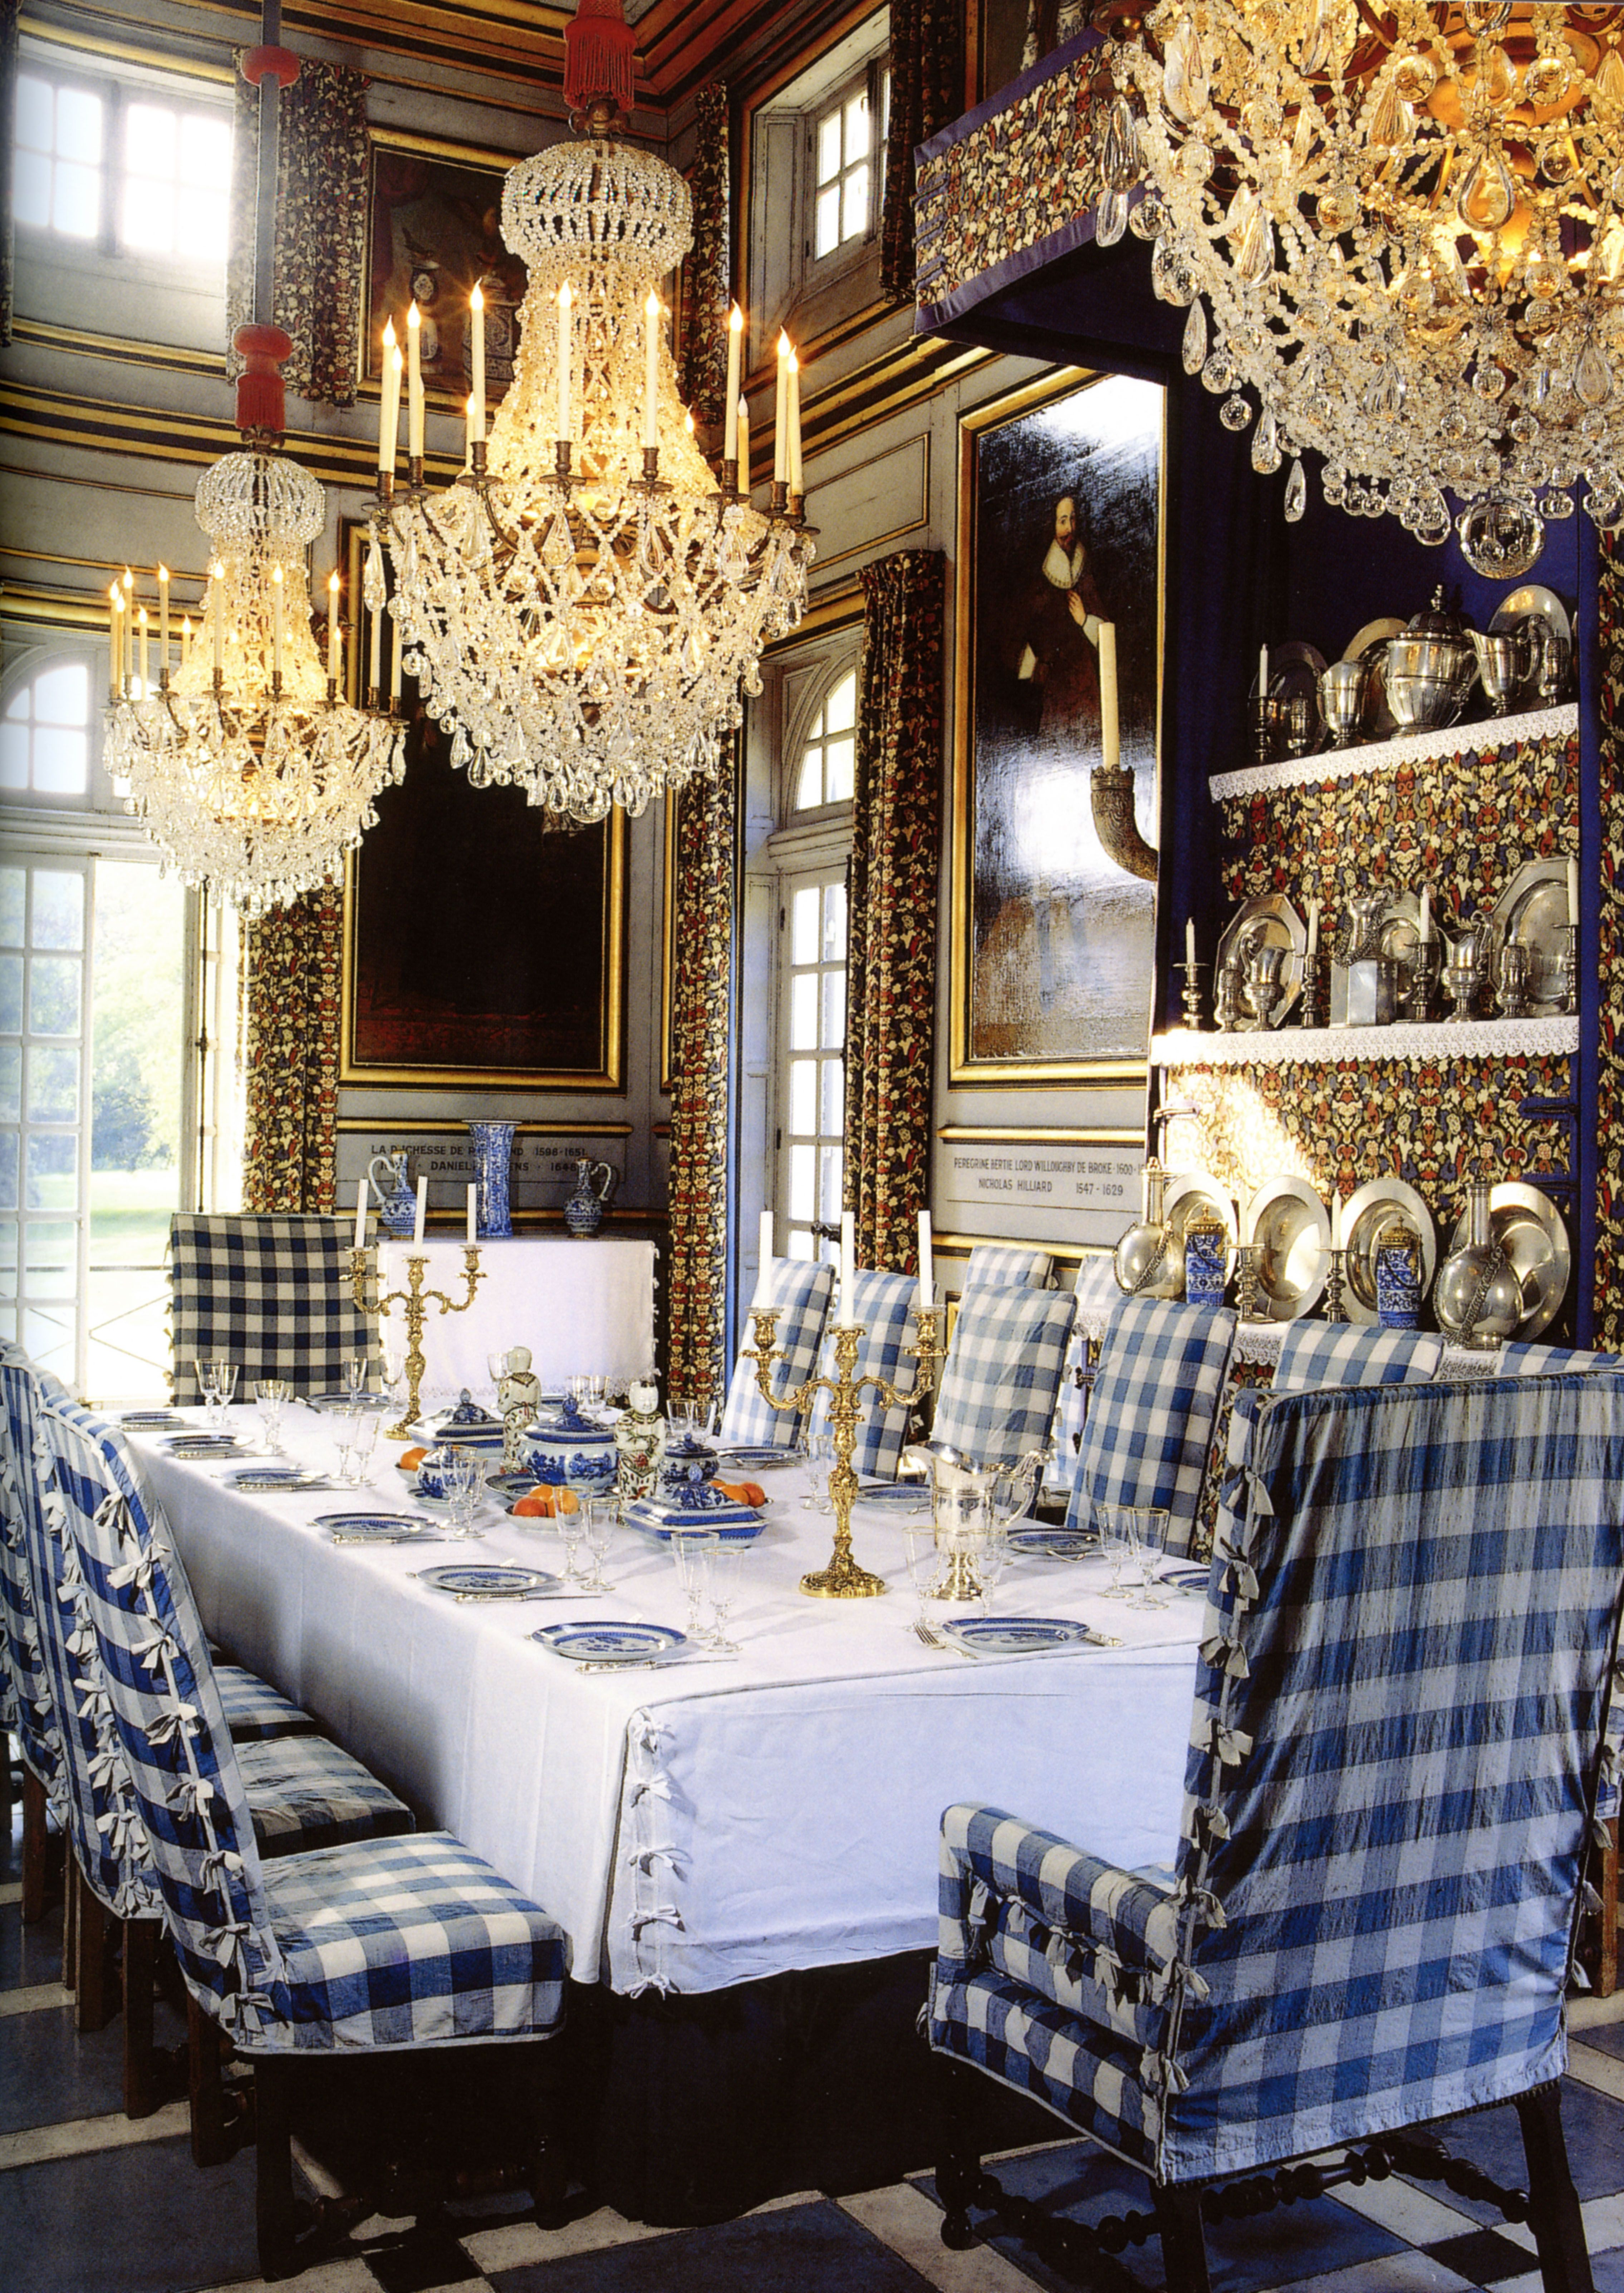 country house style english manorhouse in the country pinterest inneneinrichtung. Black Bedroom Furniture Sets. Home Design Ideas